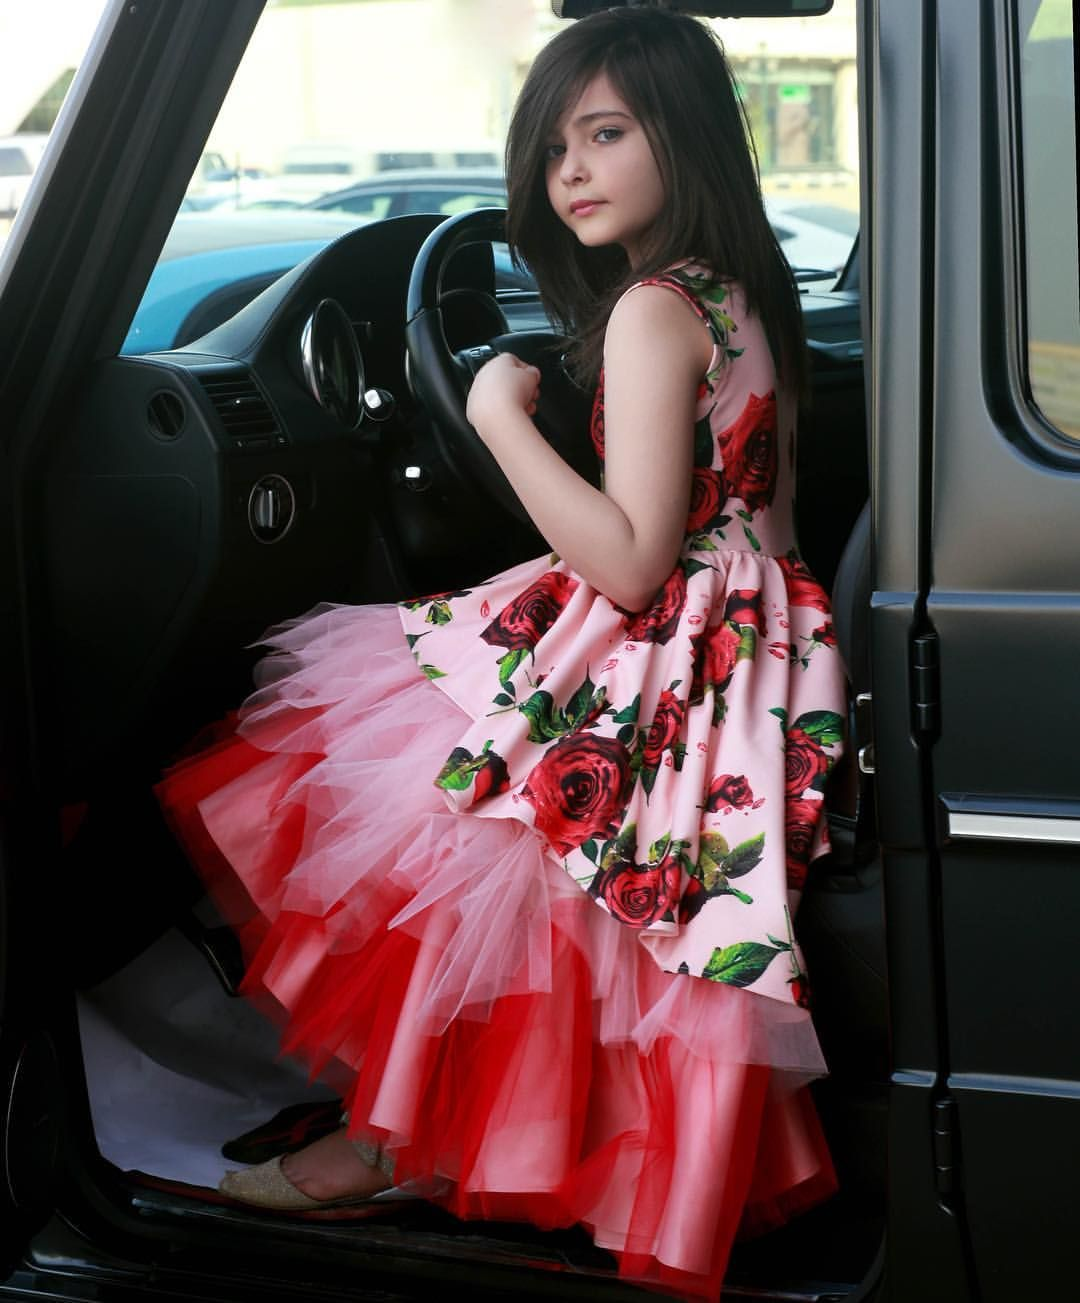 Pin By Omid Kalantary On بنات العرب Cute Little Baby Girl Dresses Kids Girl Cute Baby Girl Images